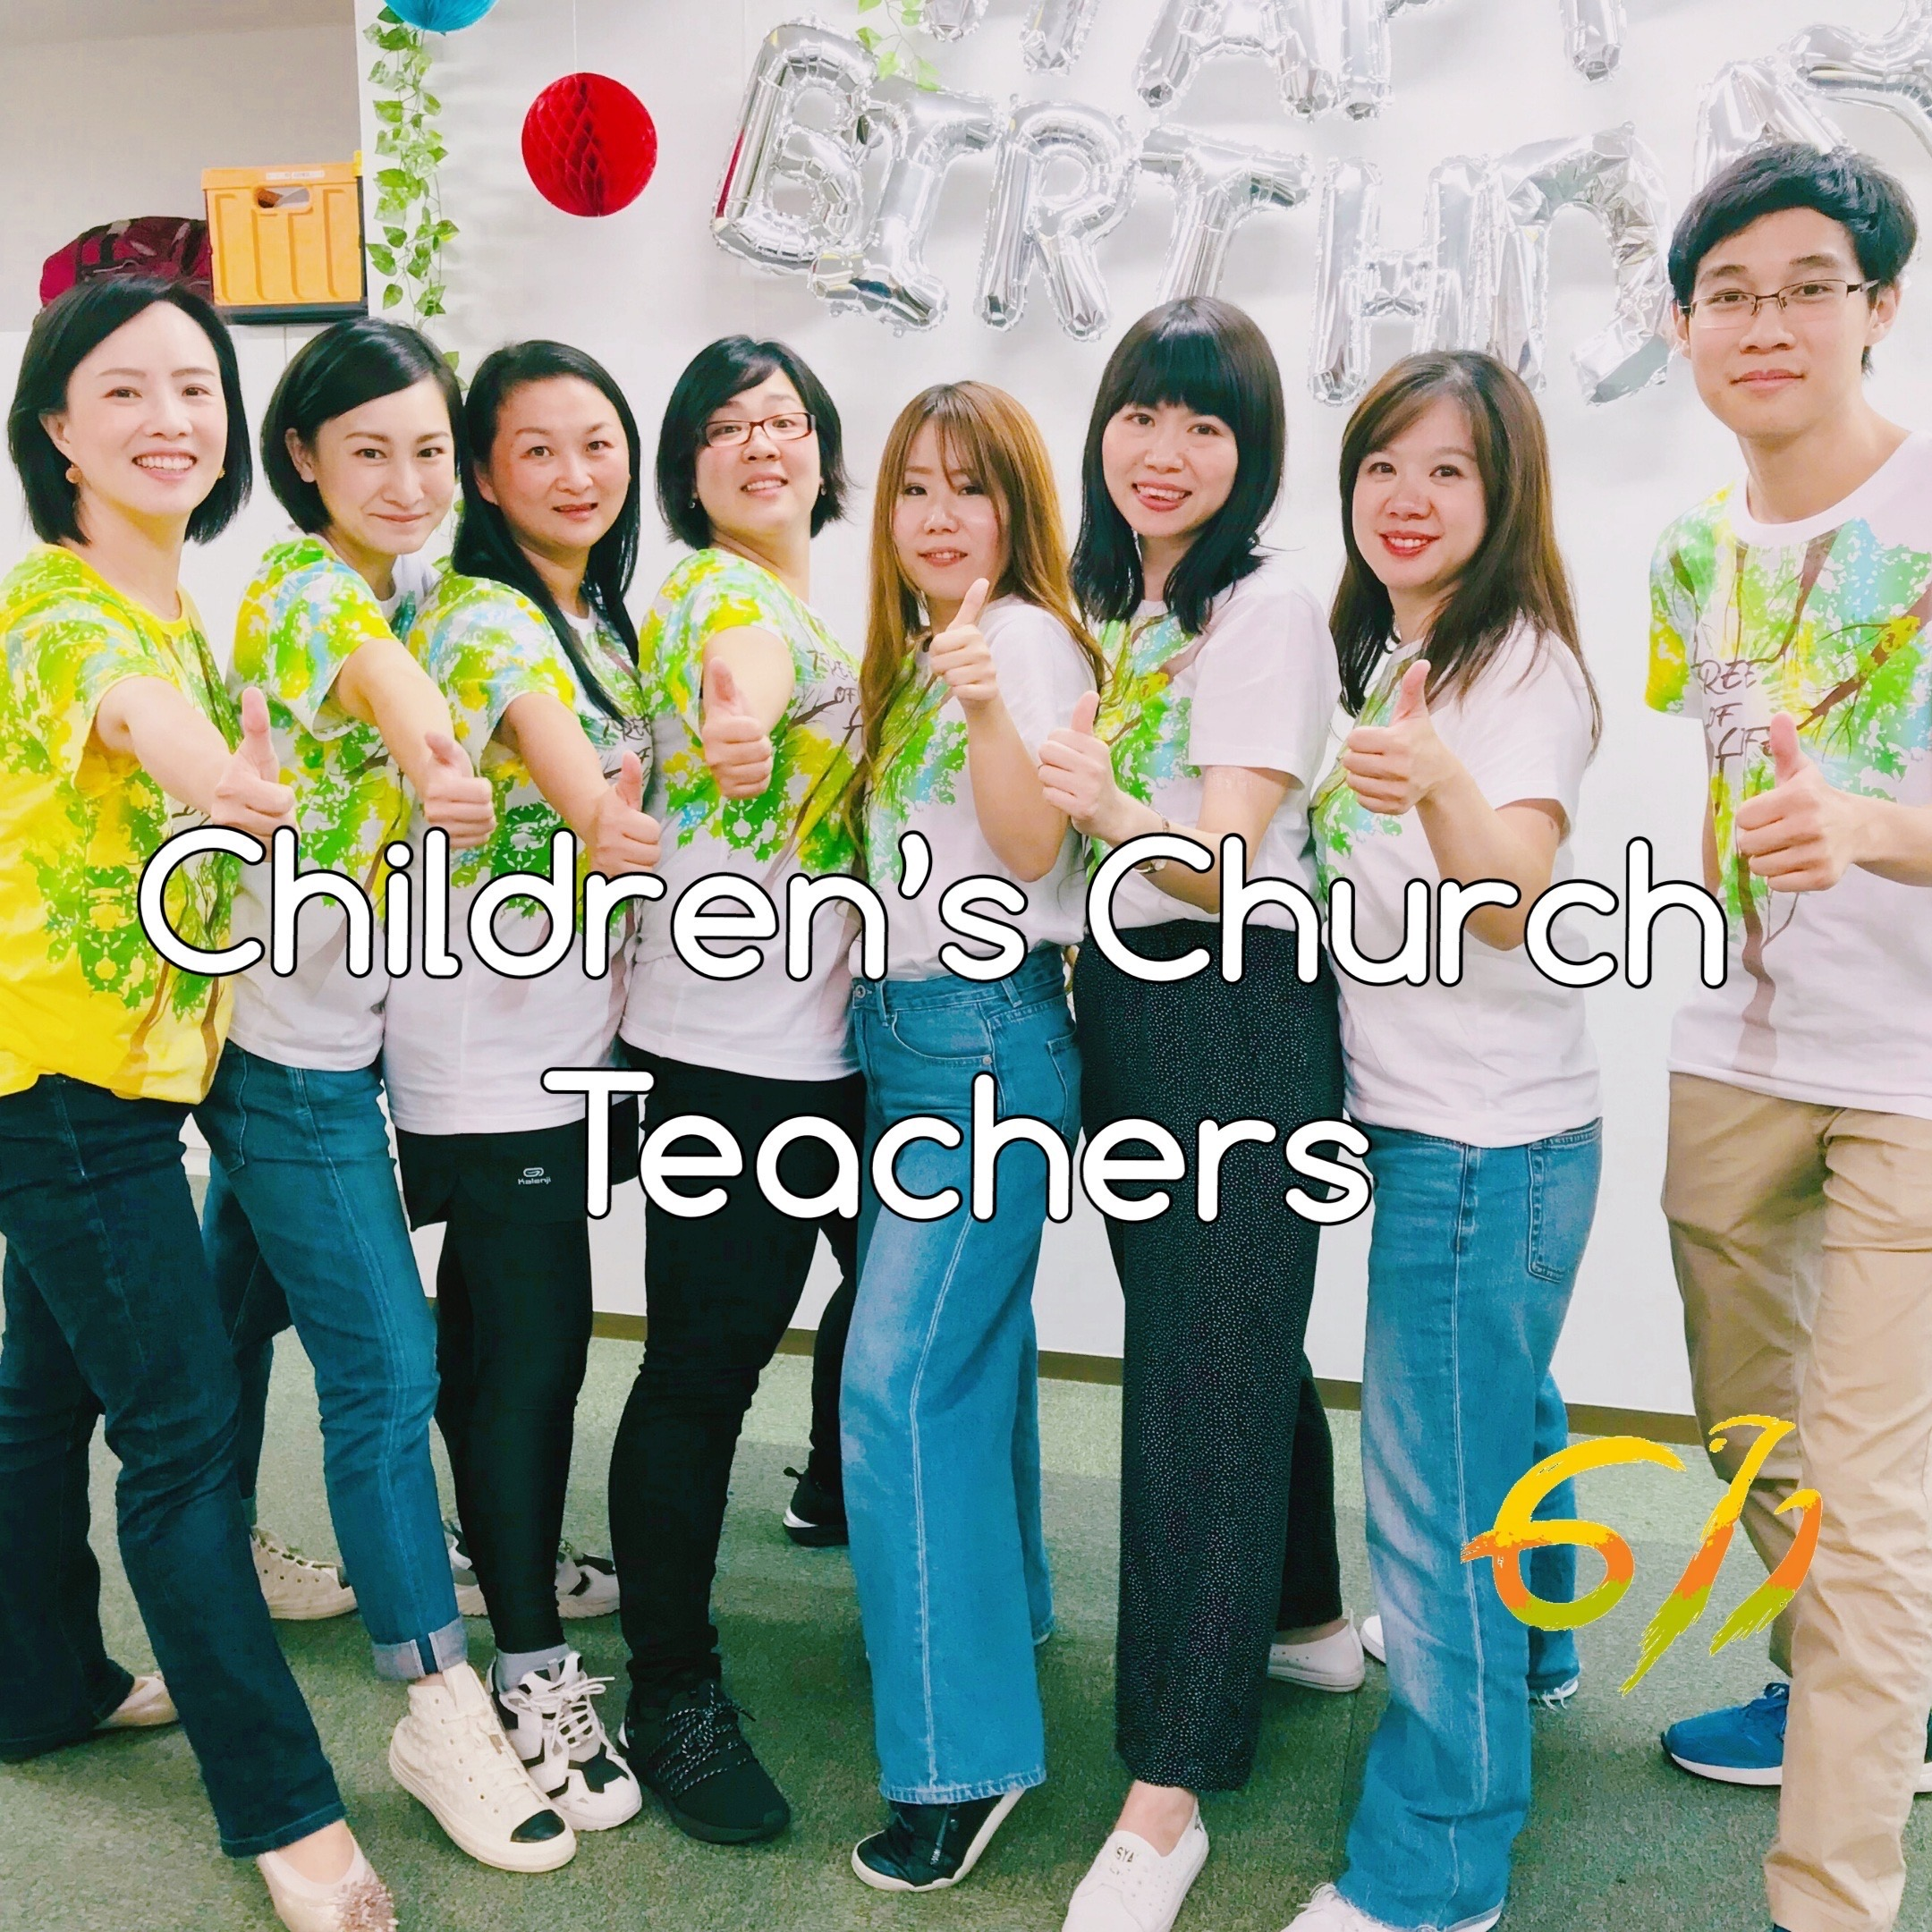 Children's Church Teachers